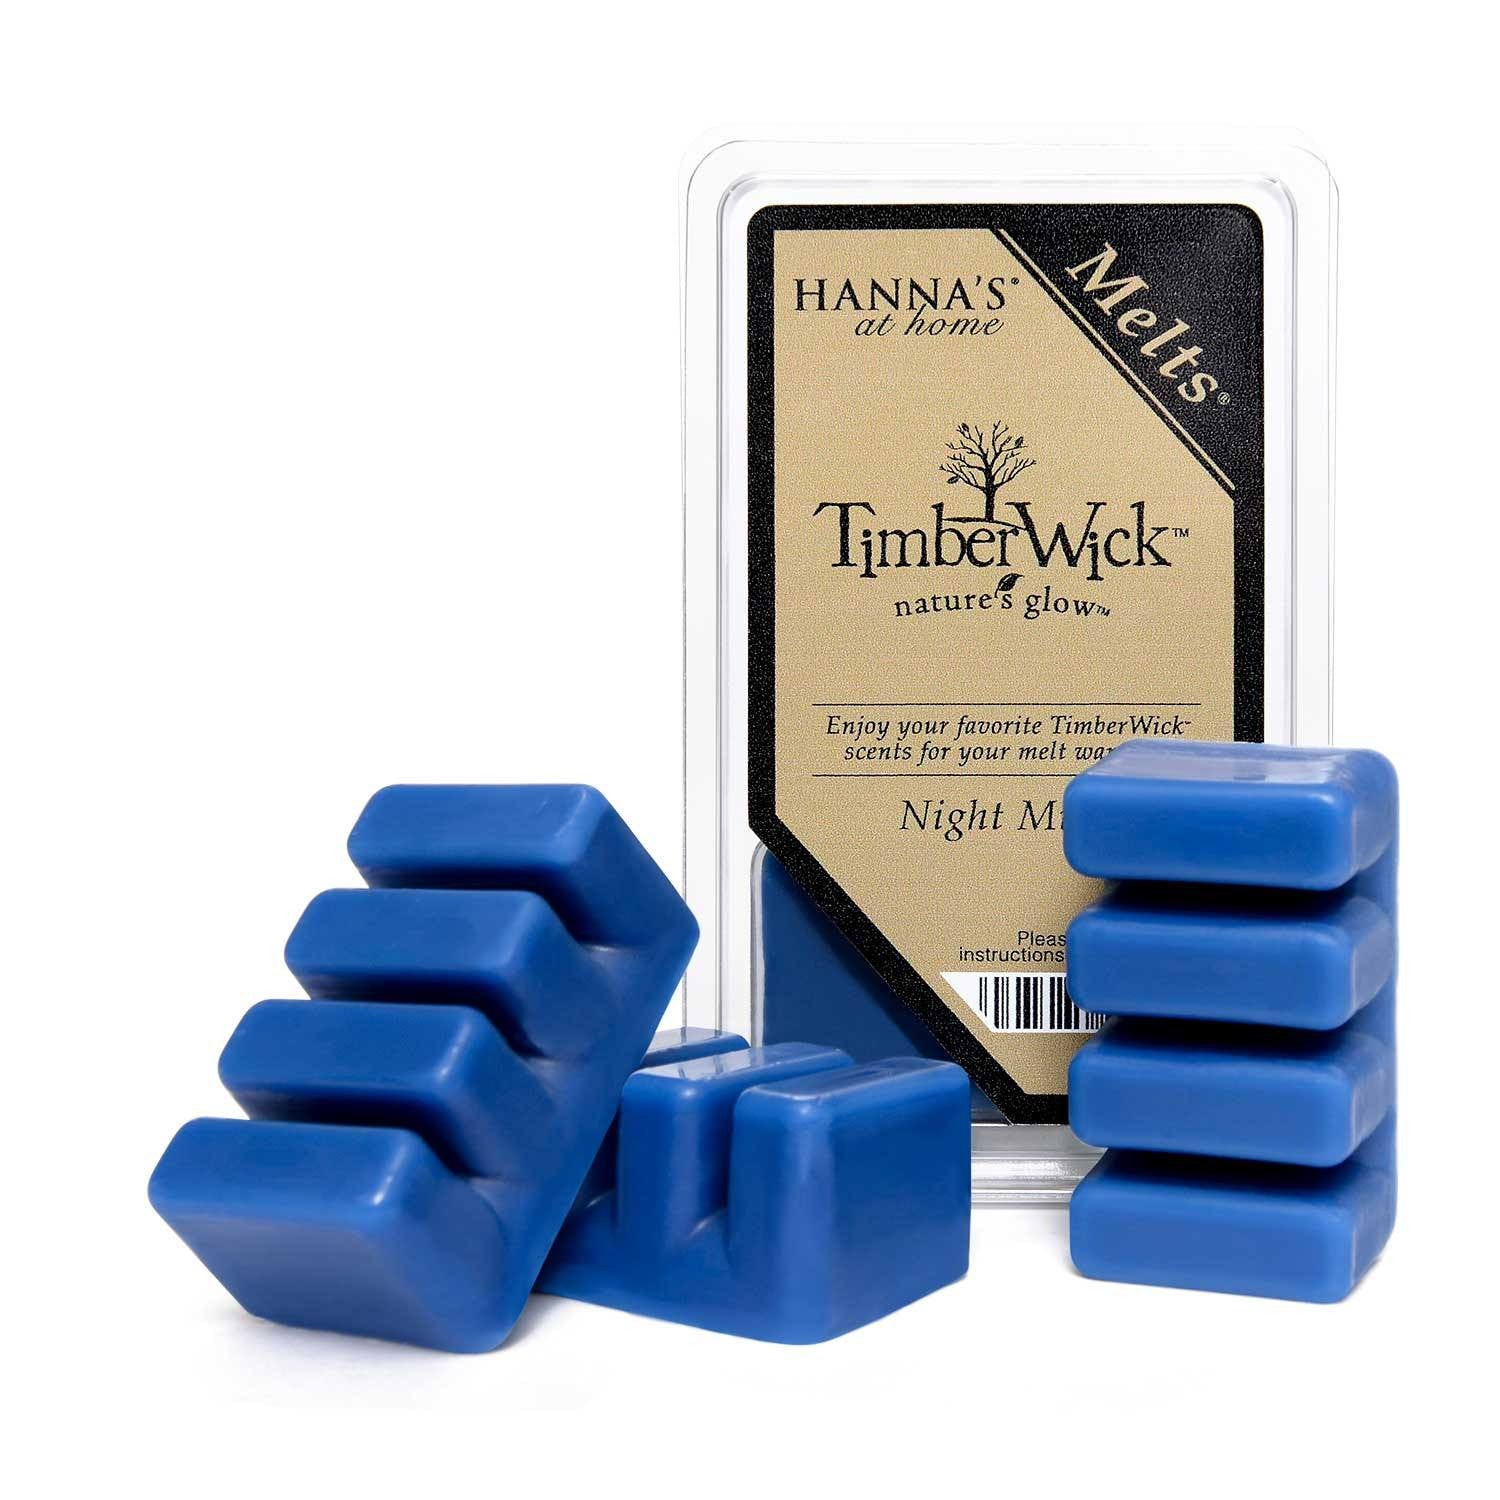 Timberwick Night Musk Scented Wax Melts Melts Candlemart.com $ 2.49